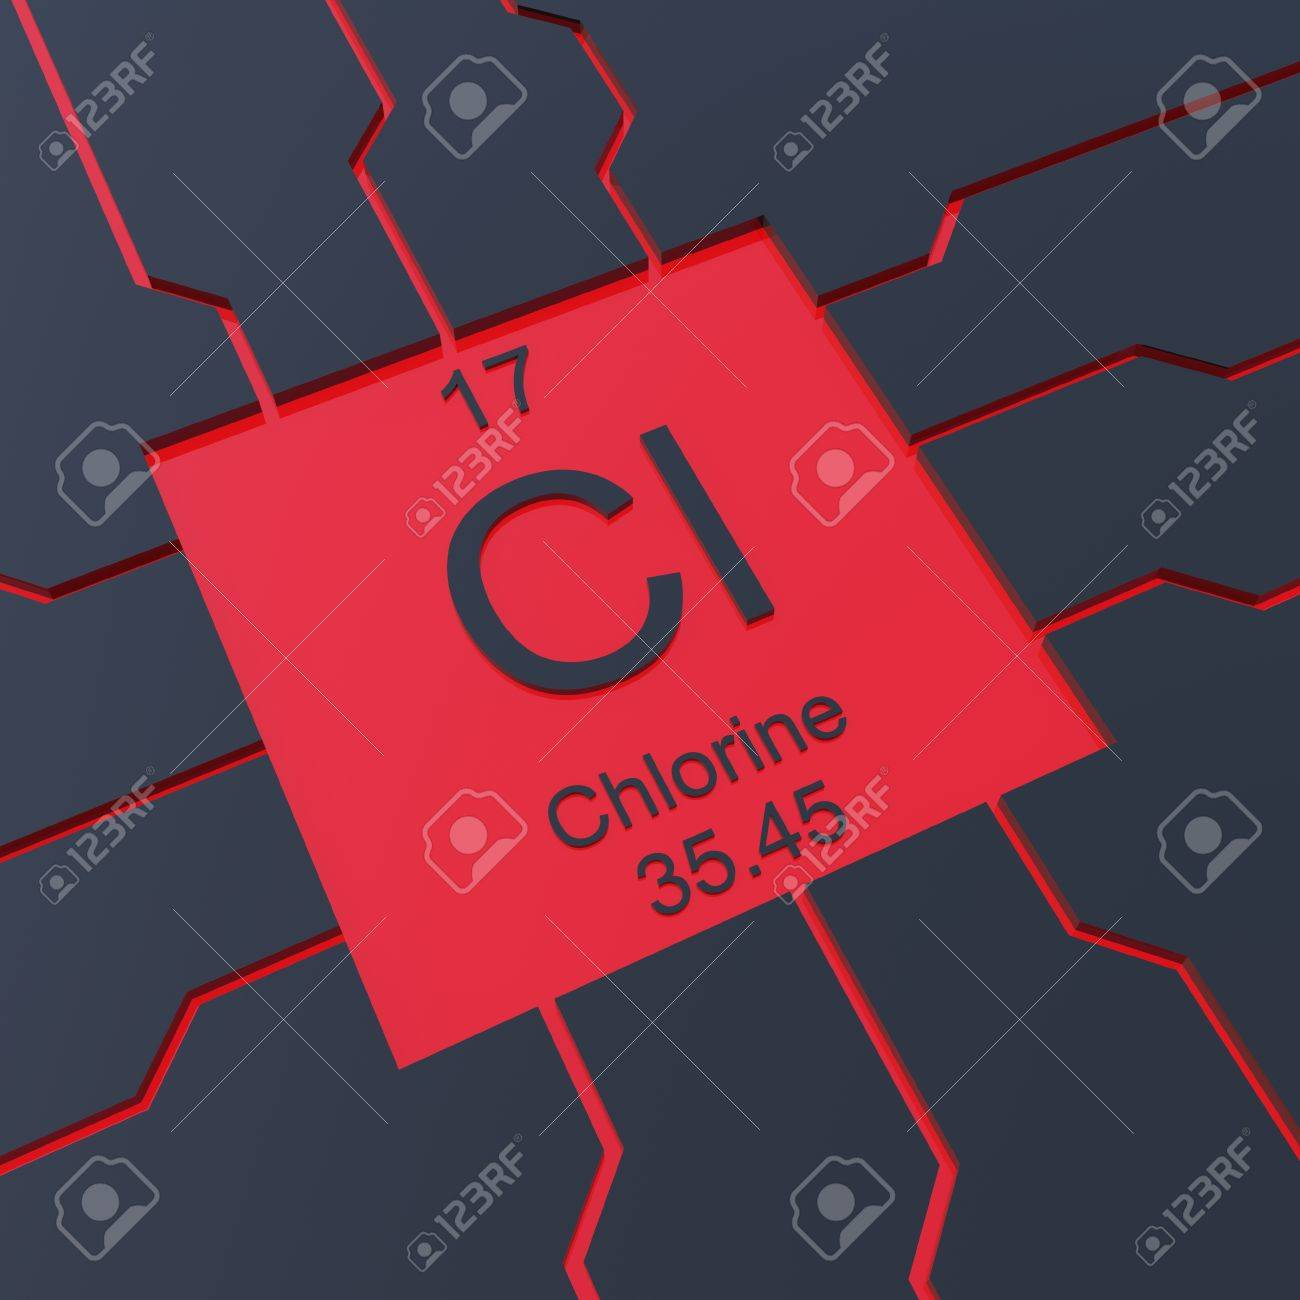 Chlorine symbol element from the periodic table stock photo chlorine symbol element from the periodic table stock photo 31217739 urtaz Gallery